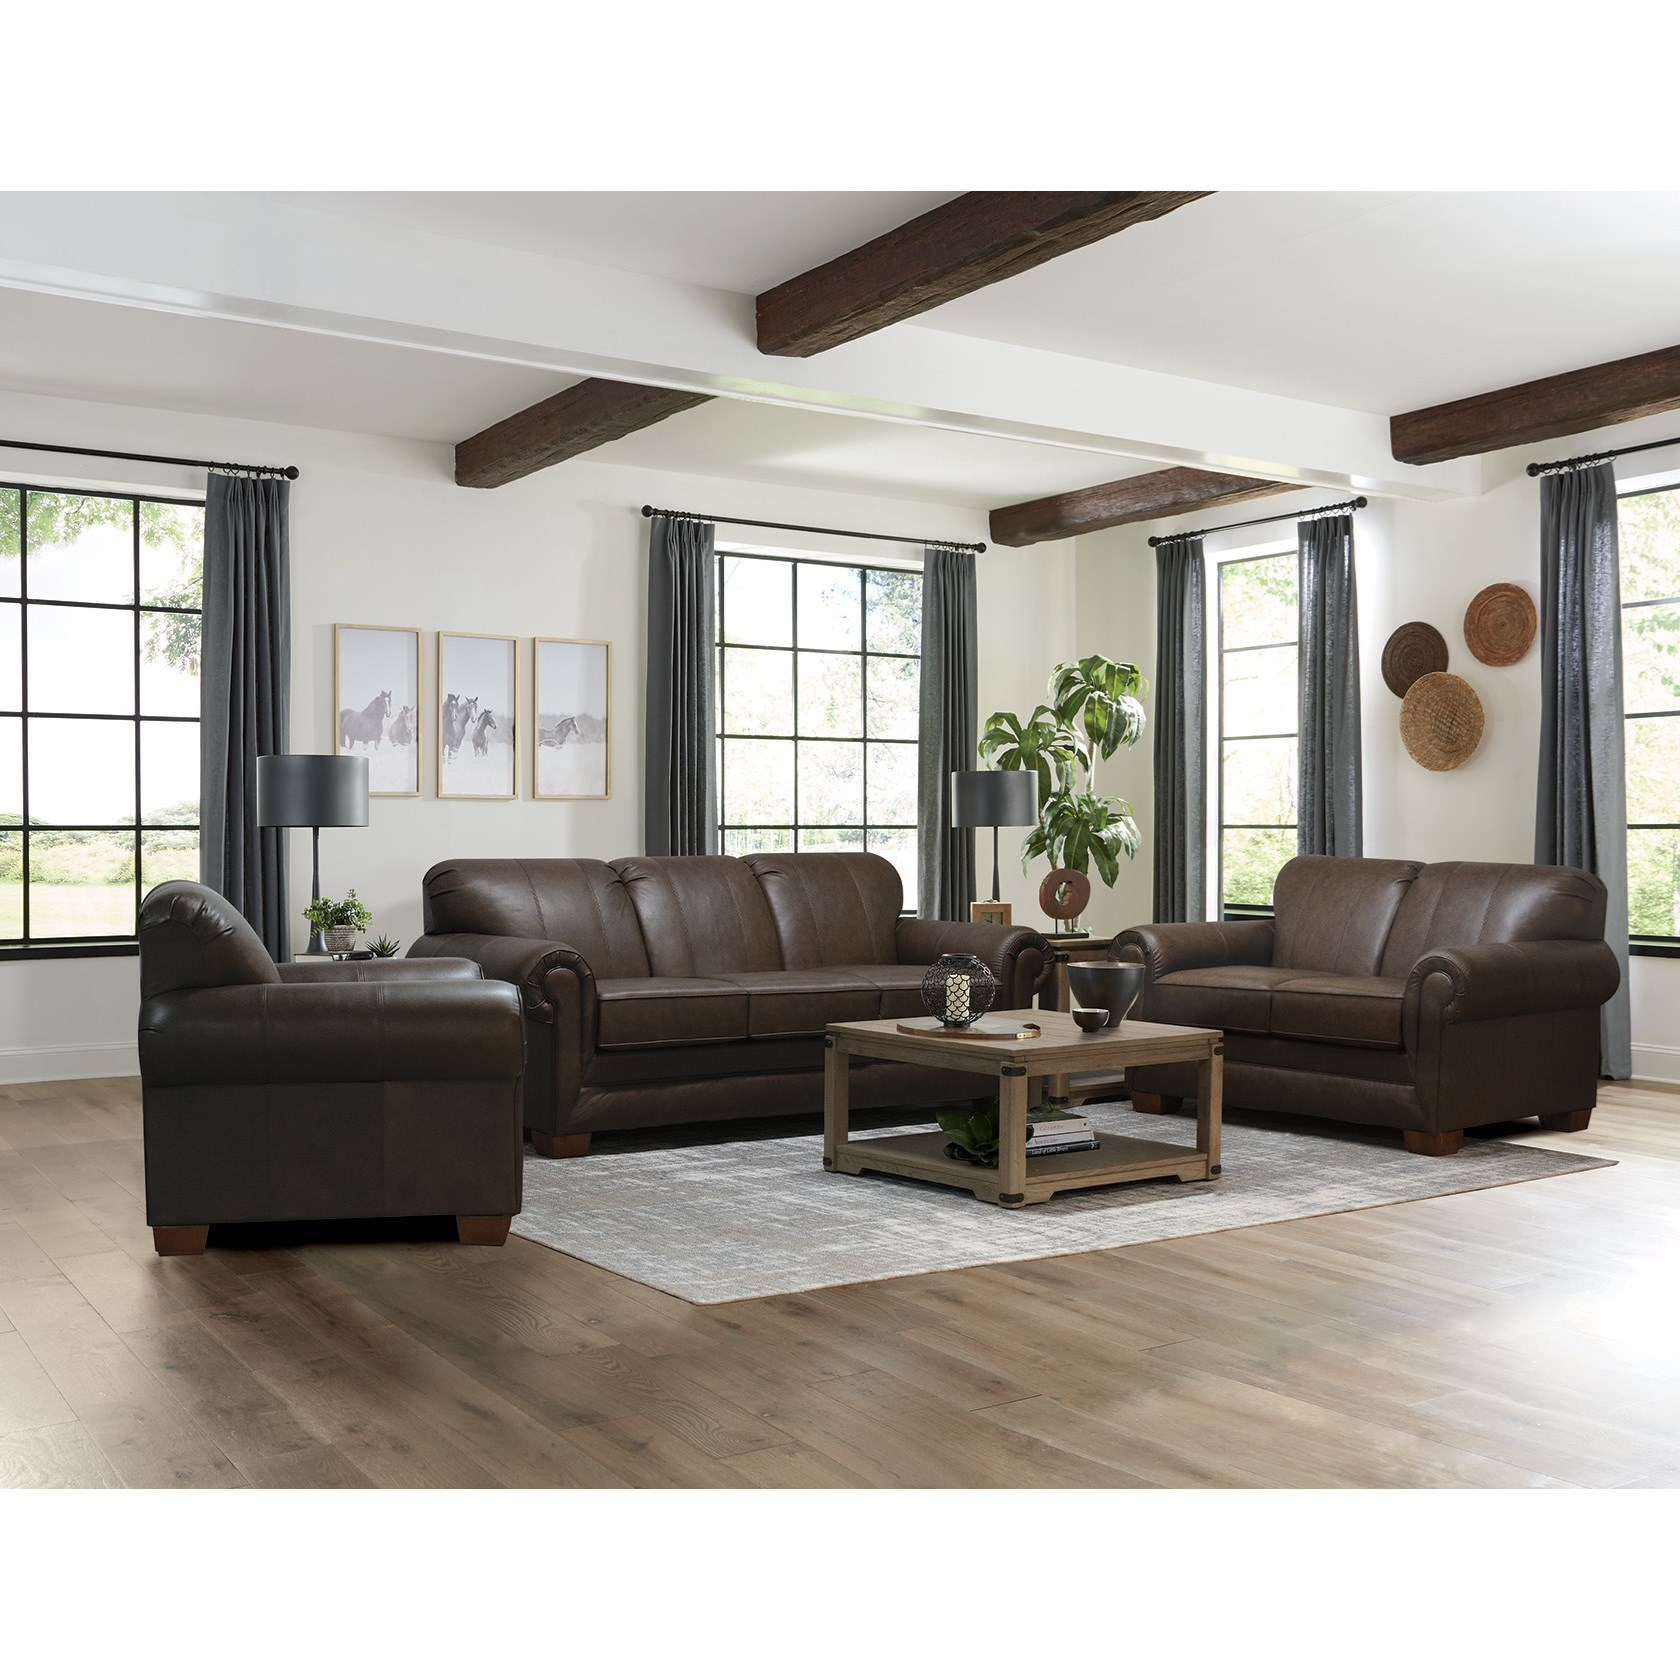 V140 Stationary Living Room Group by Alexvale at Northeast Factory Direct